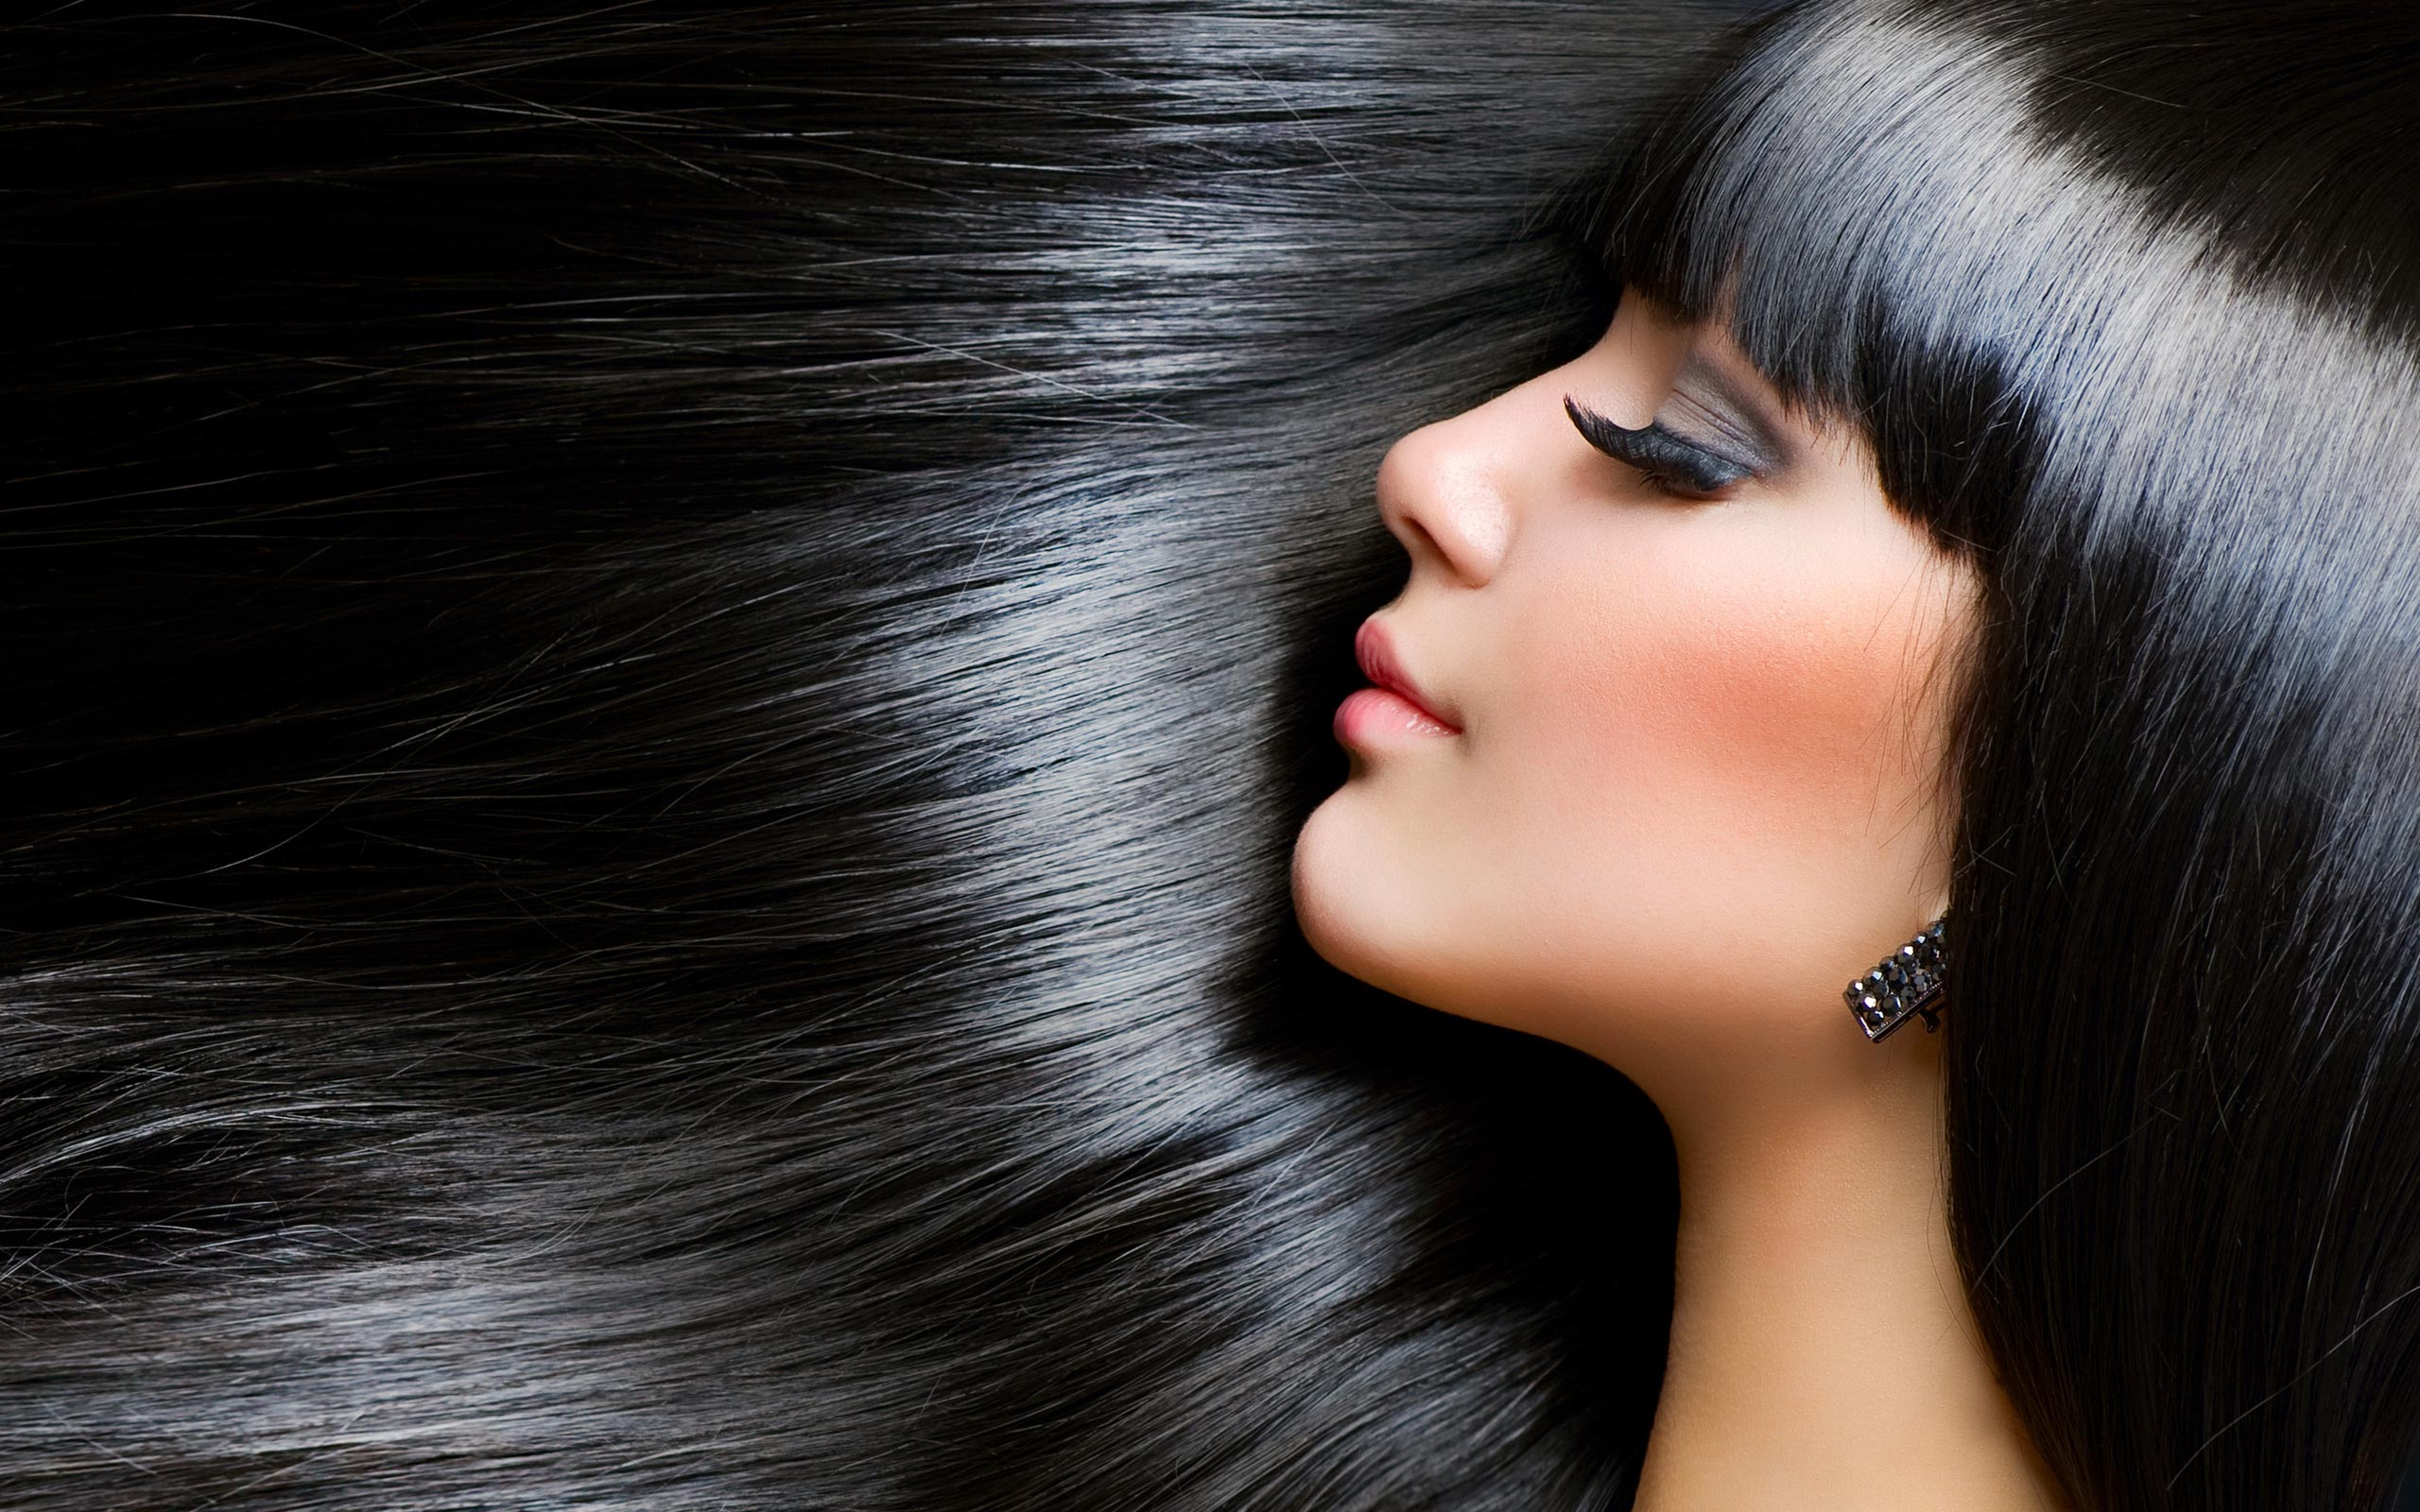 Hairdresser 4K Ultra HD Wallpaper Download, Dede Takacs